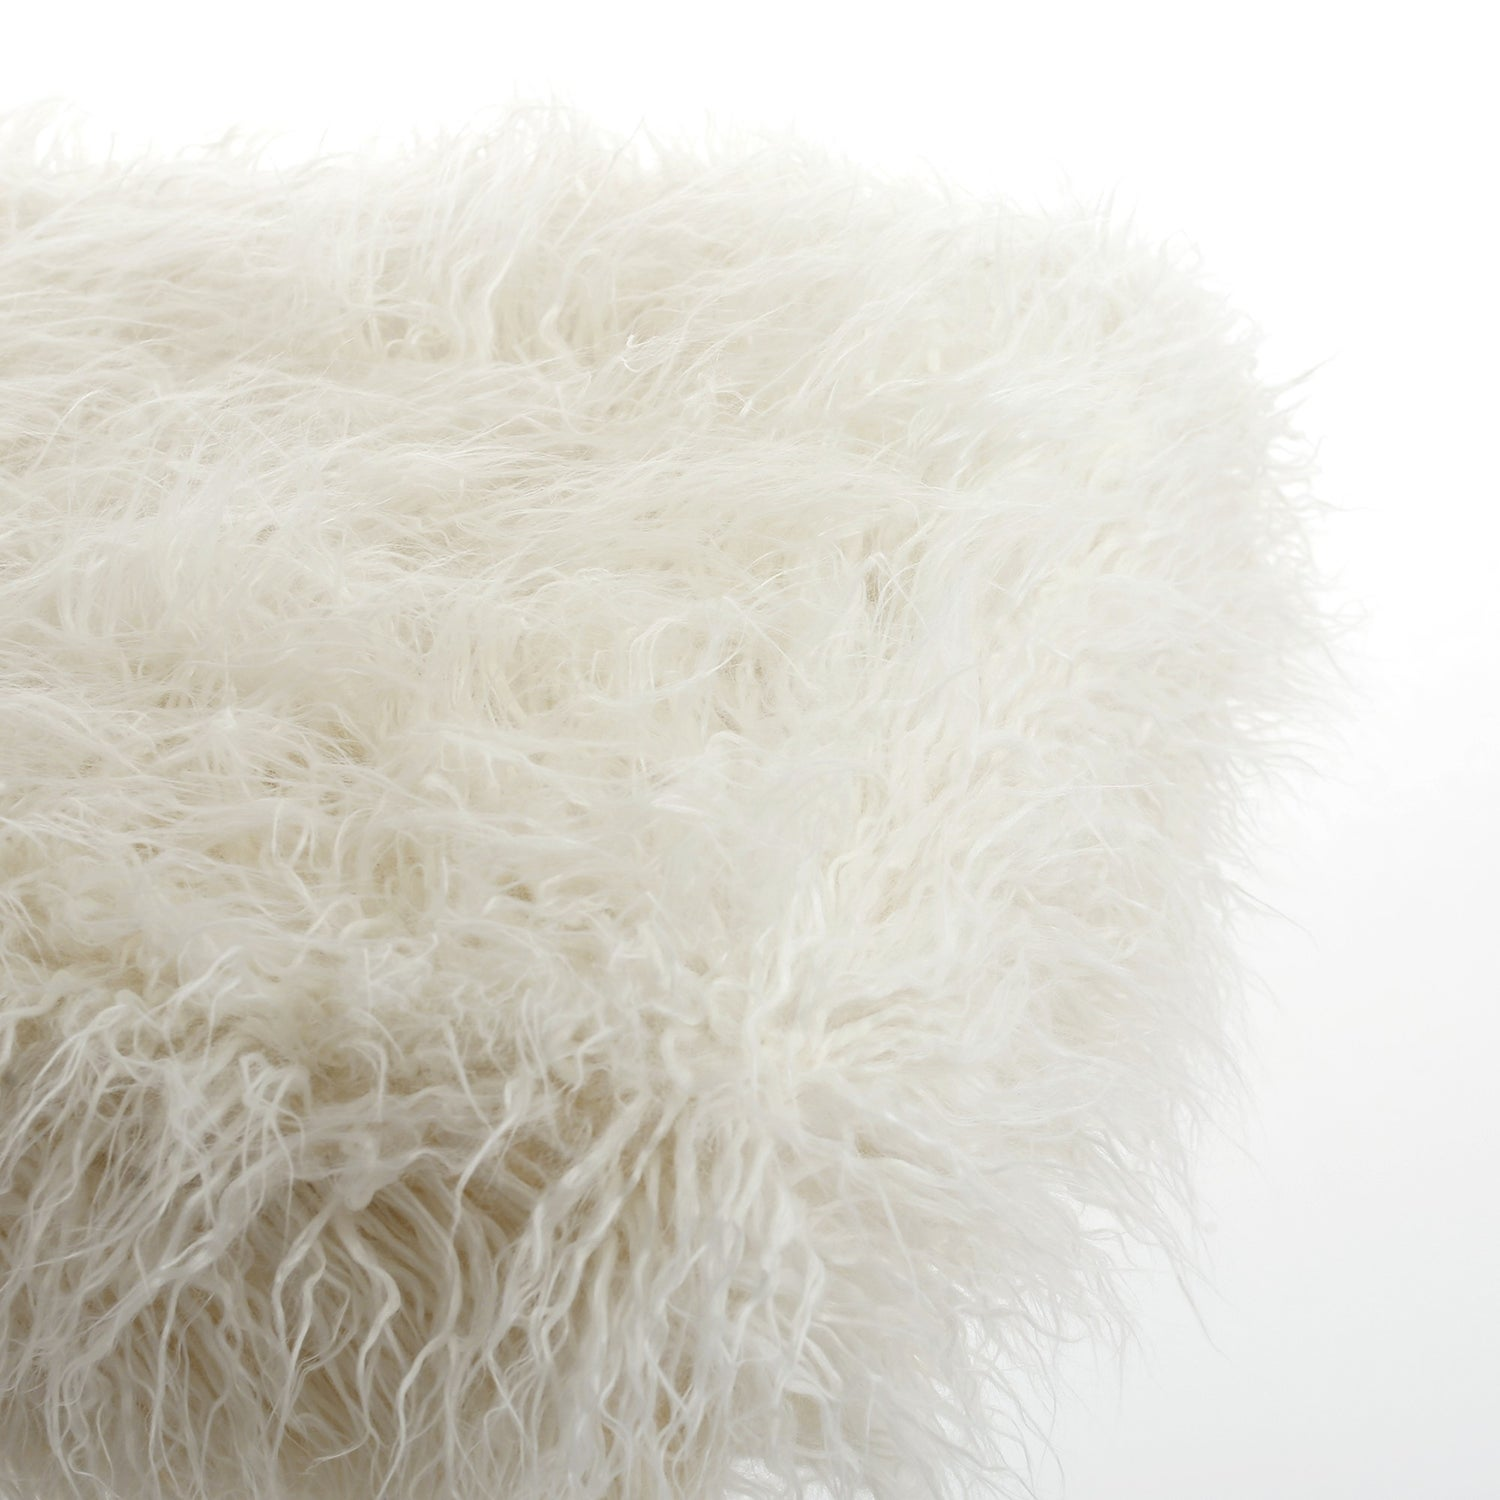 Image of 676685041784 Rockwall Mongolian Sheepskin 2X6 Stone White